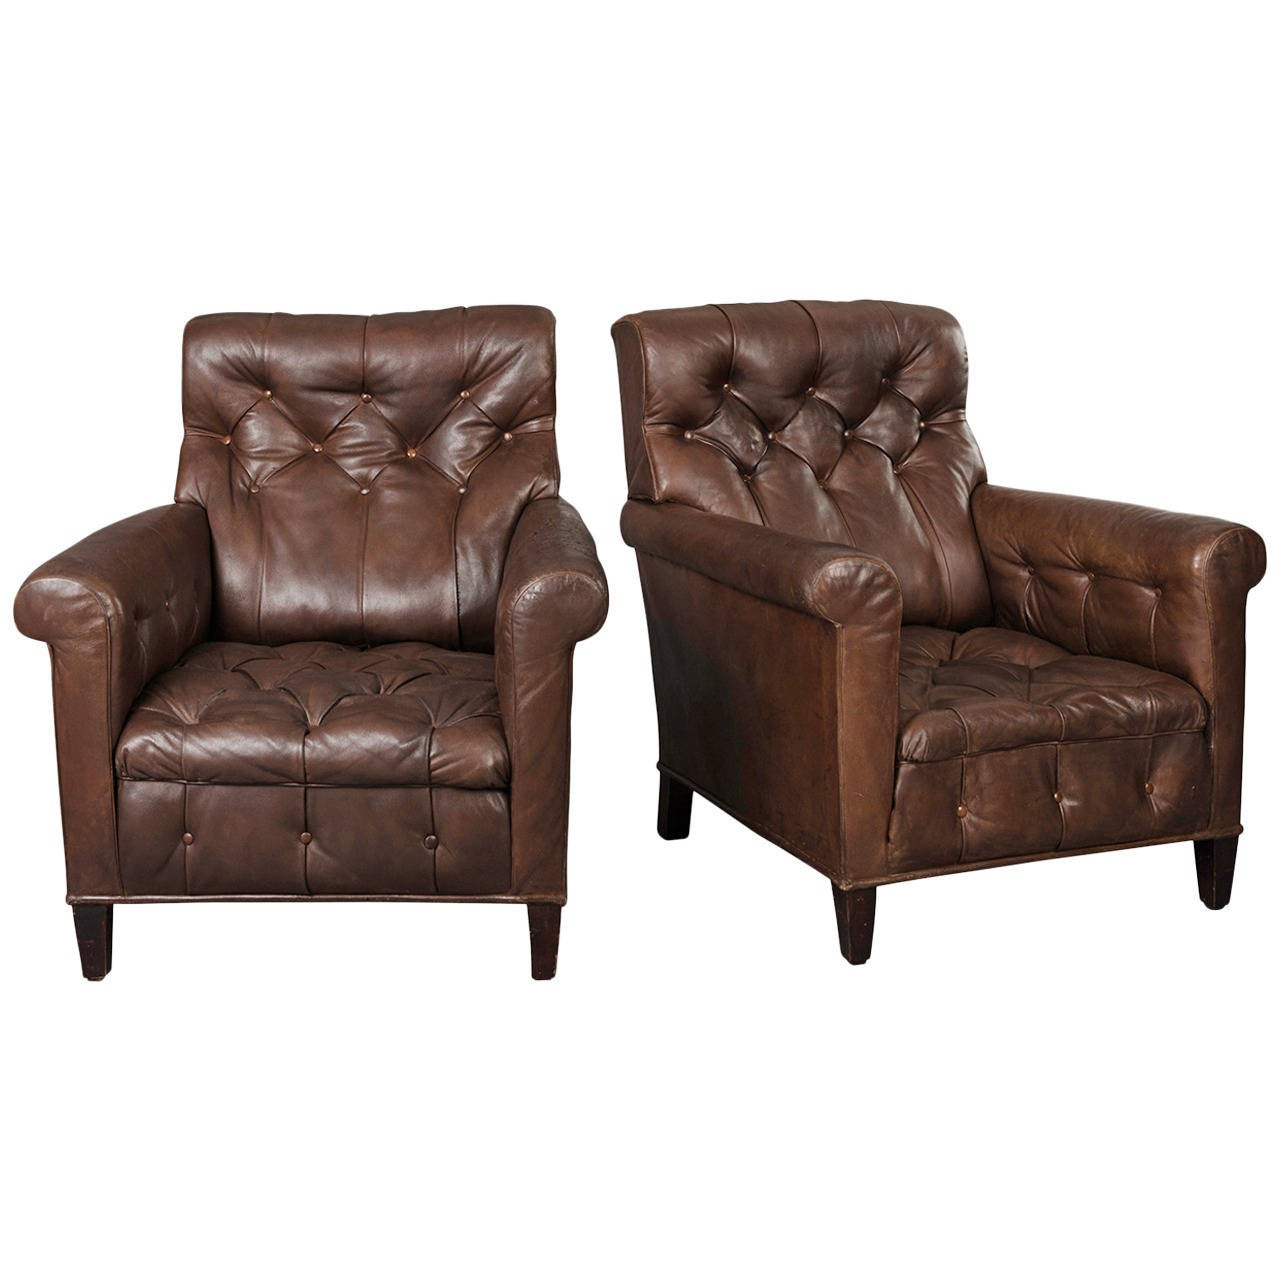 Superbe Pair Of Early 20th Century Tufted Leather Armchairs For Sale